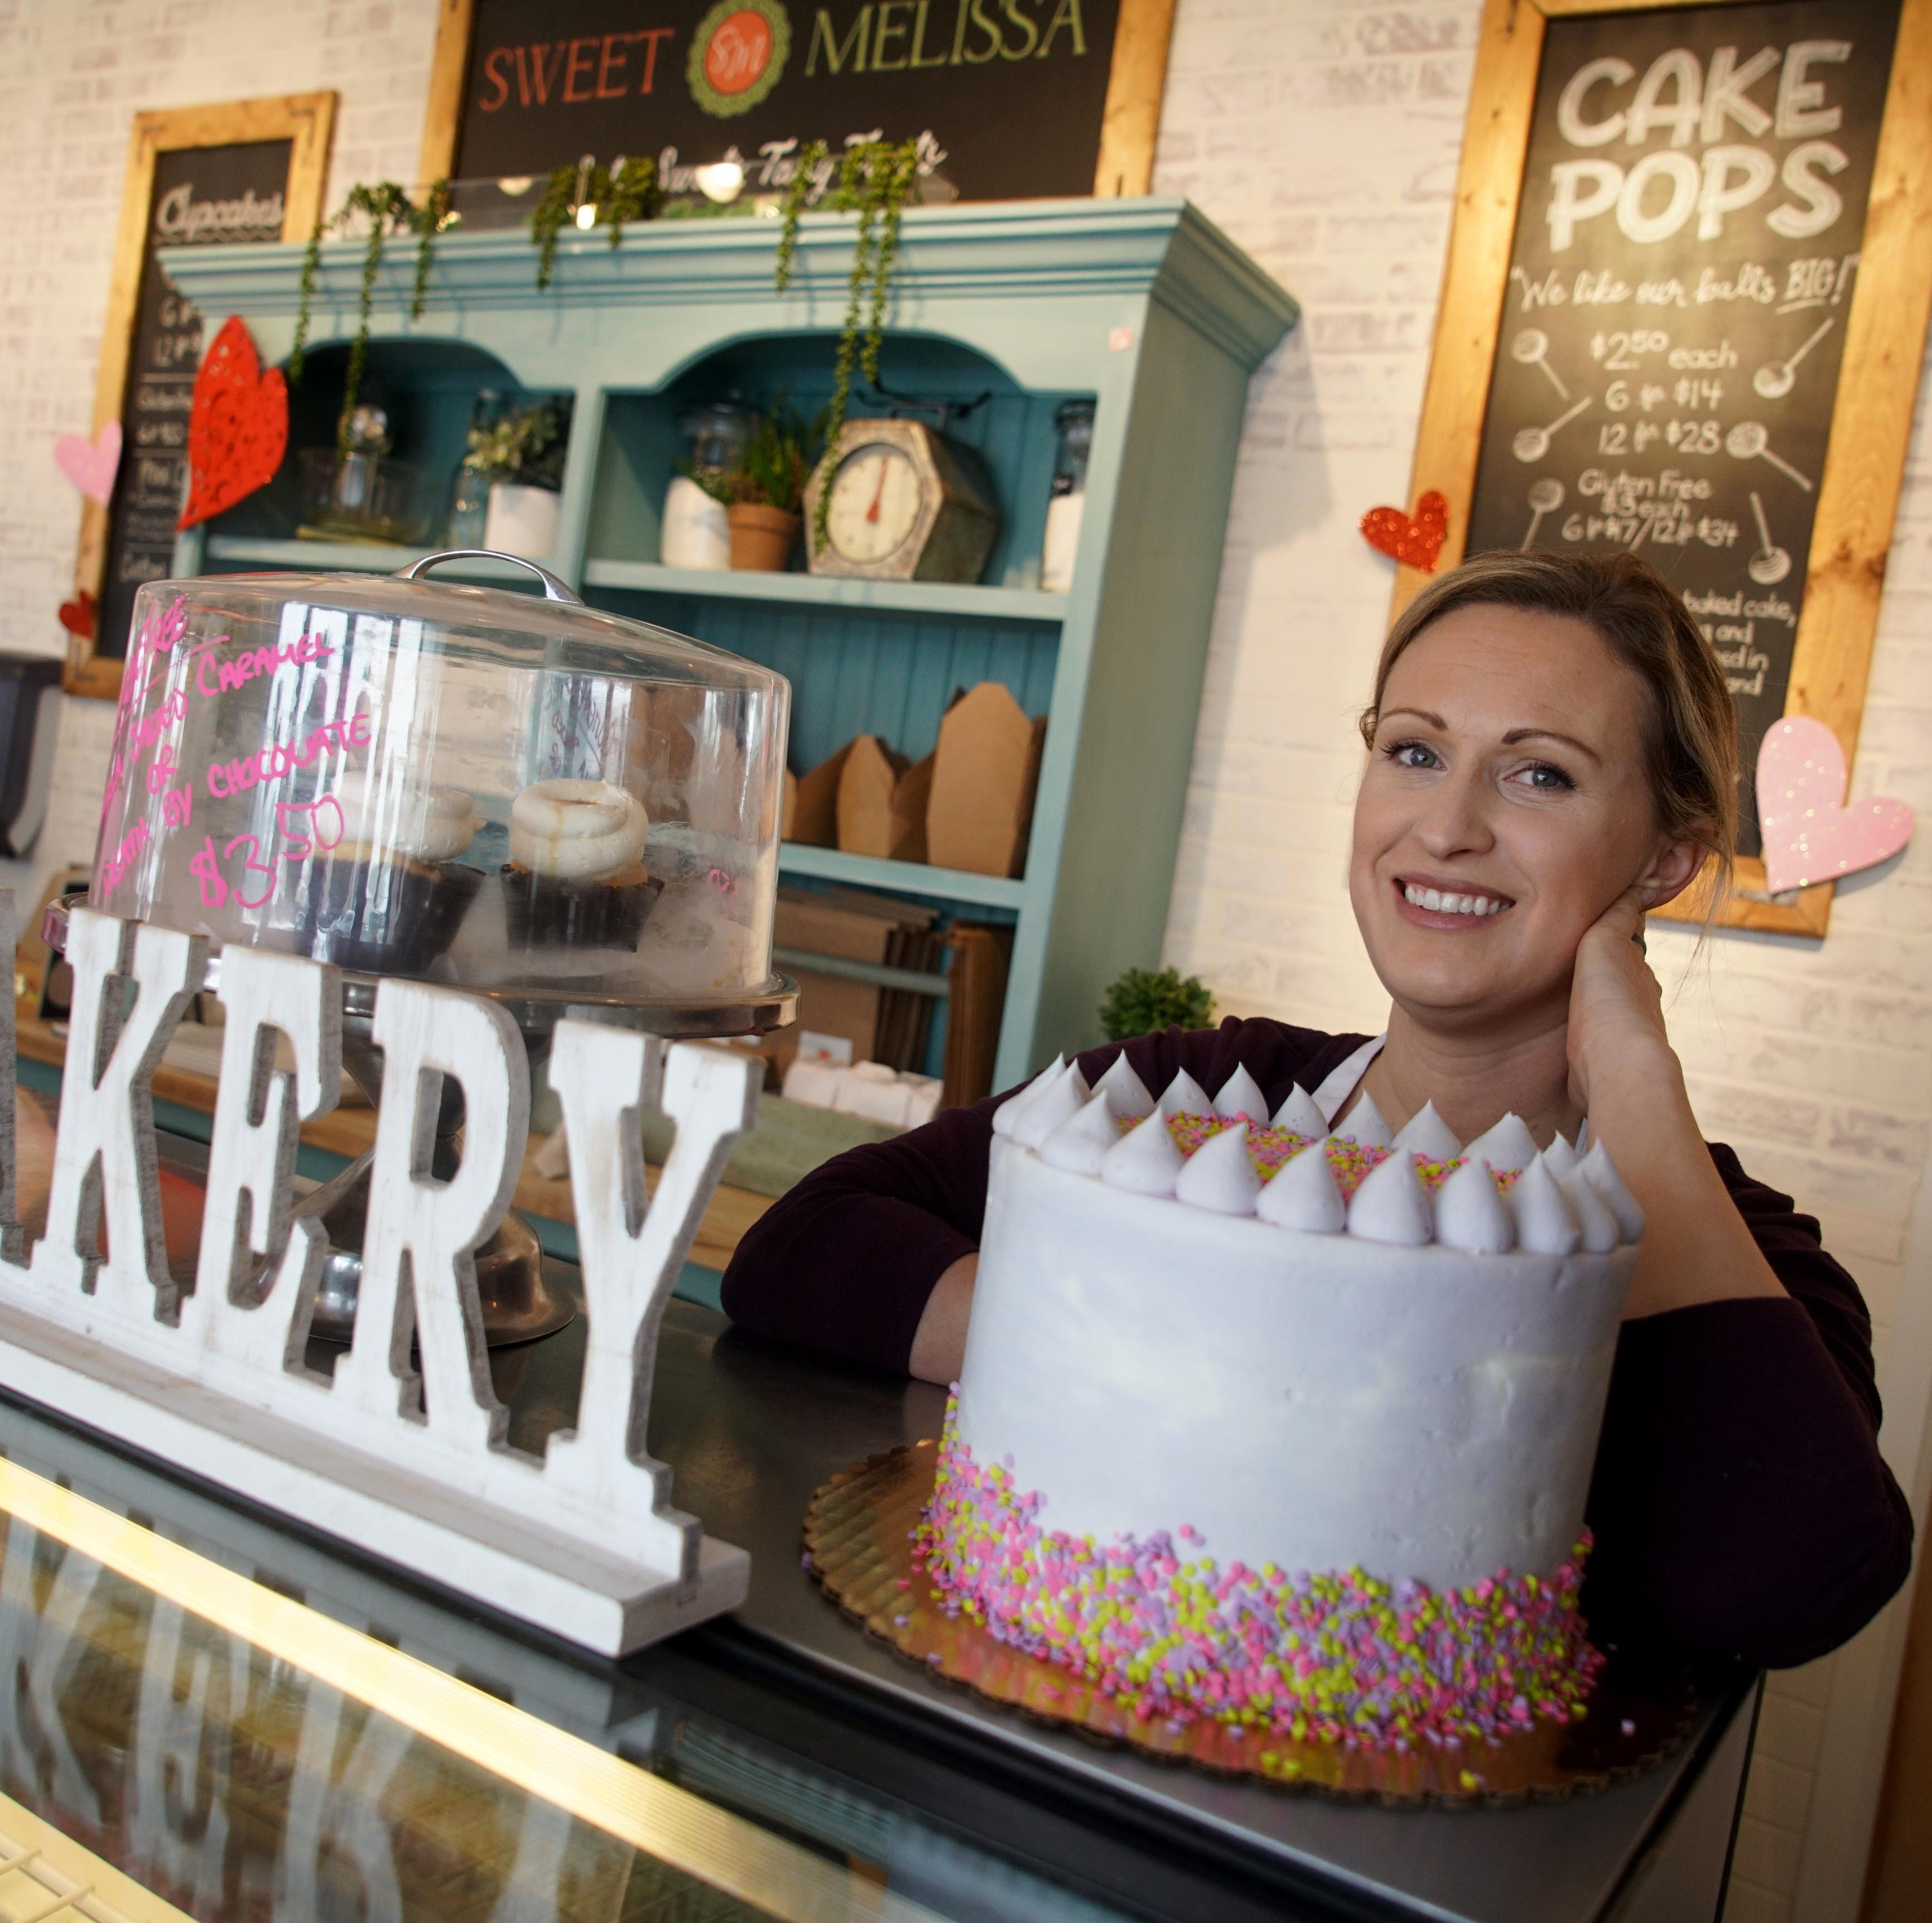 Melissa Marchione, owner of Sweet Melissa Bakery at Main Street Station in Middletown, turned her passion for baking into a new booming business.